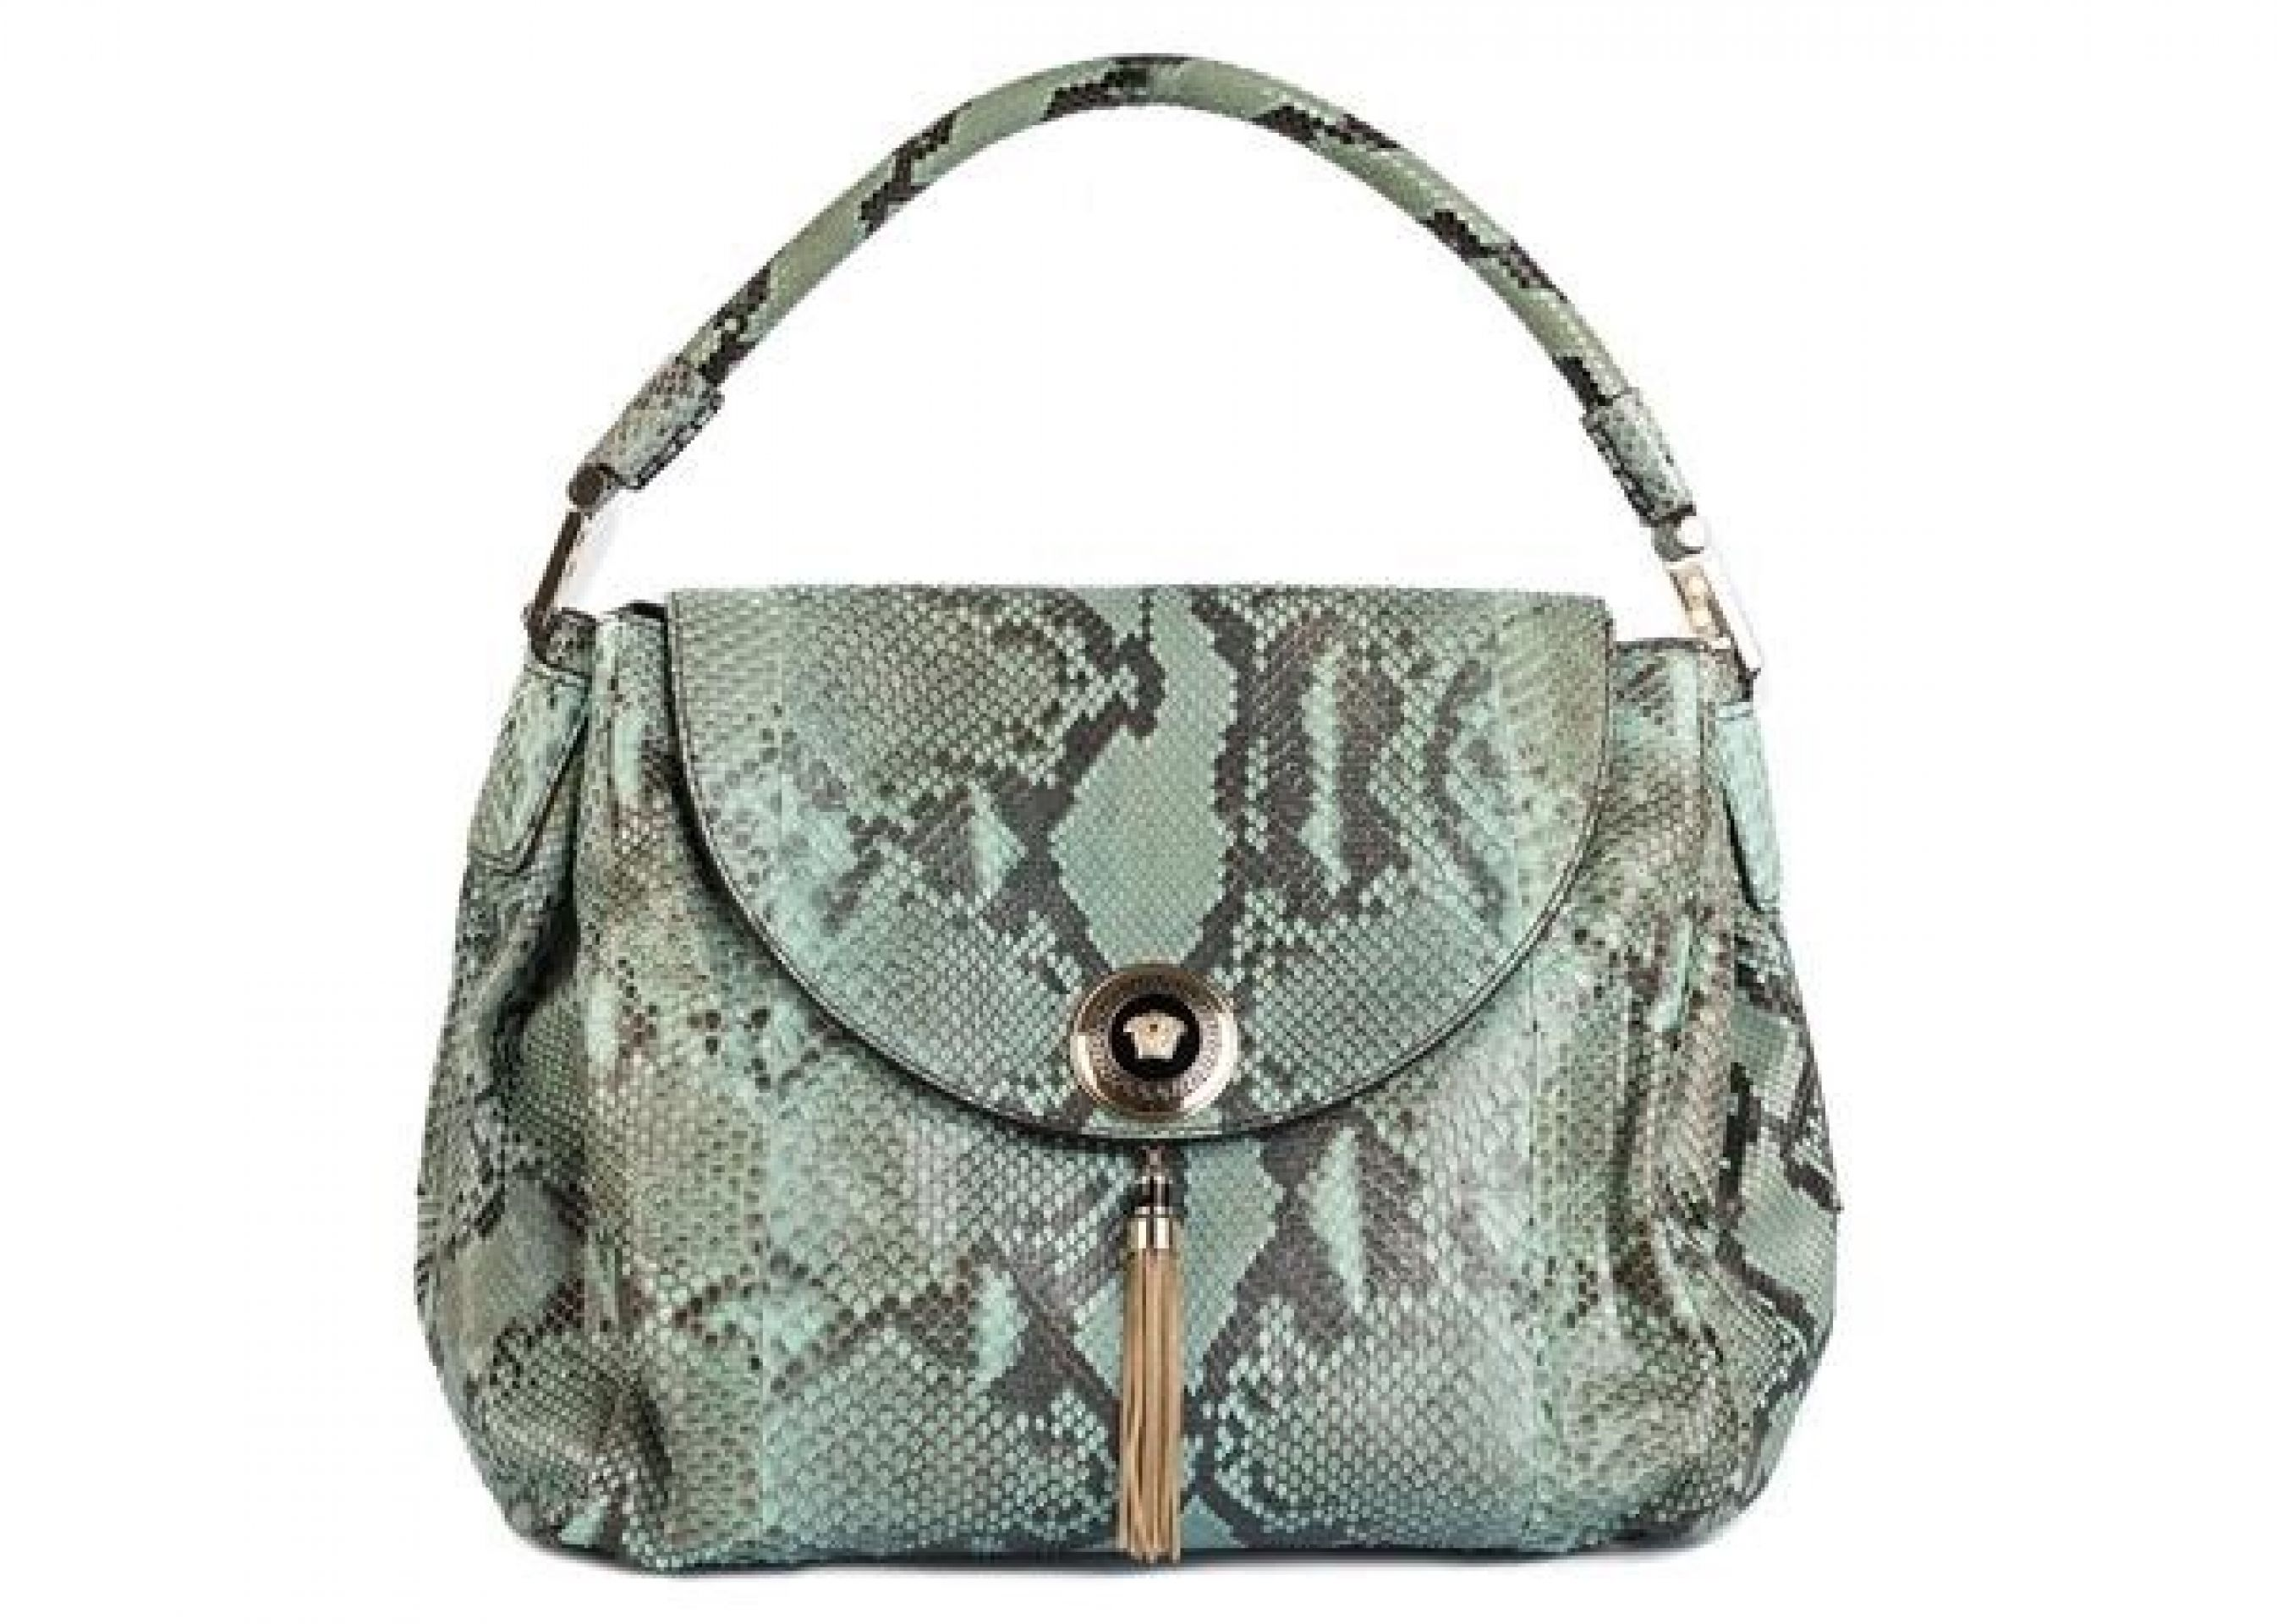 VERSACE WOMENS TEAL LEATHER PYTHON VANITAS ALTEA TOP HANDLE SATCHEL BAG